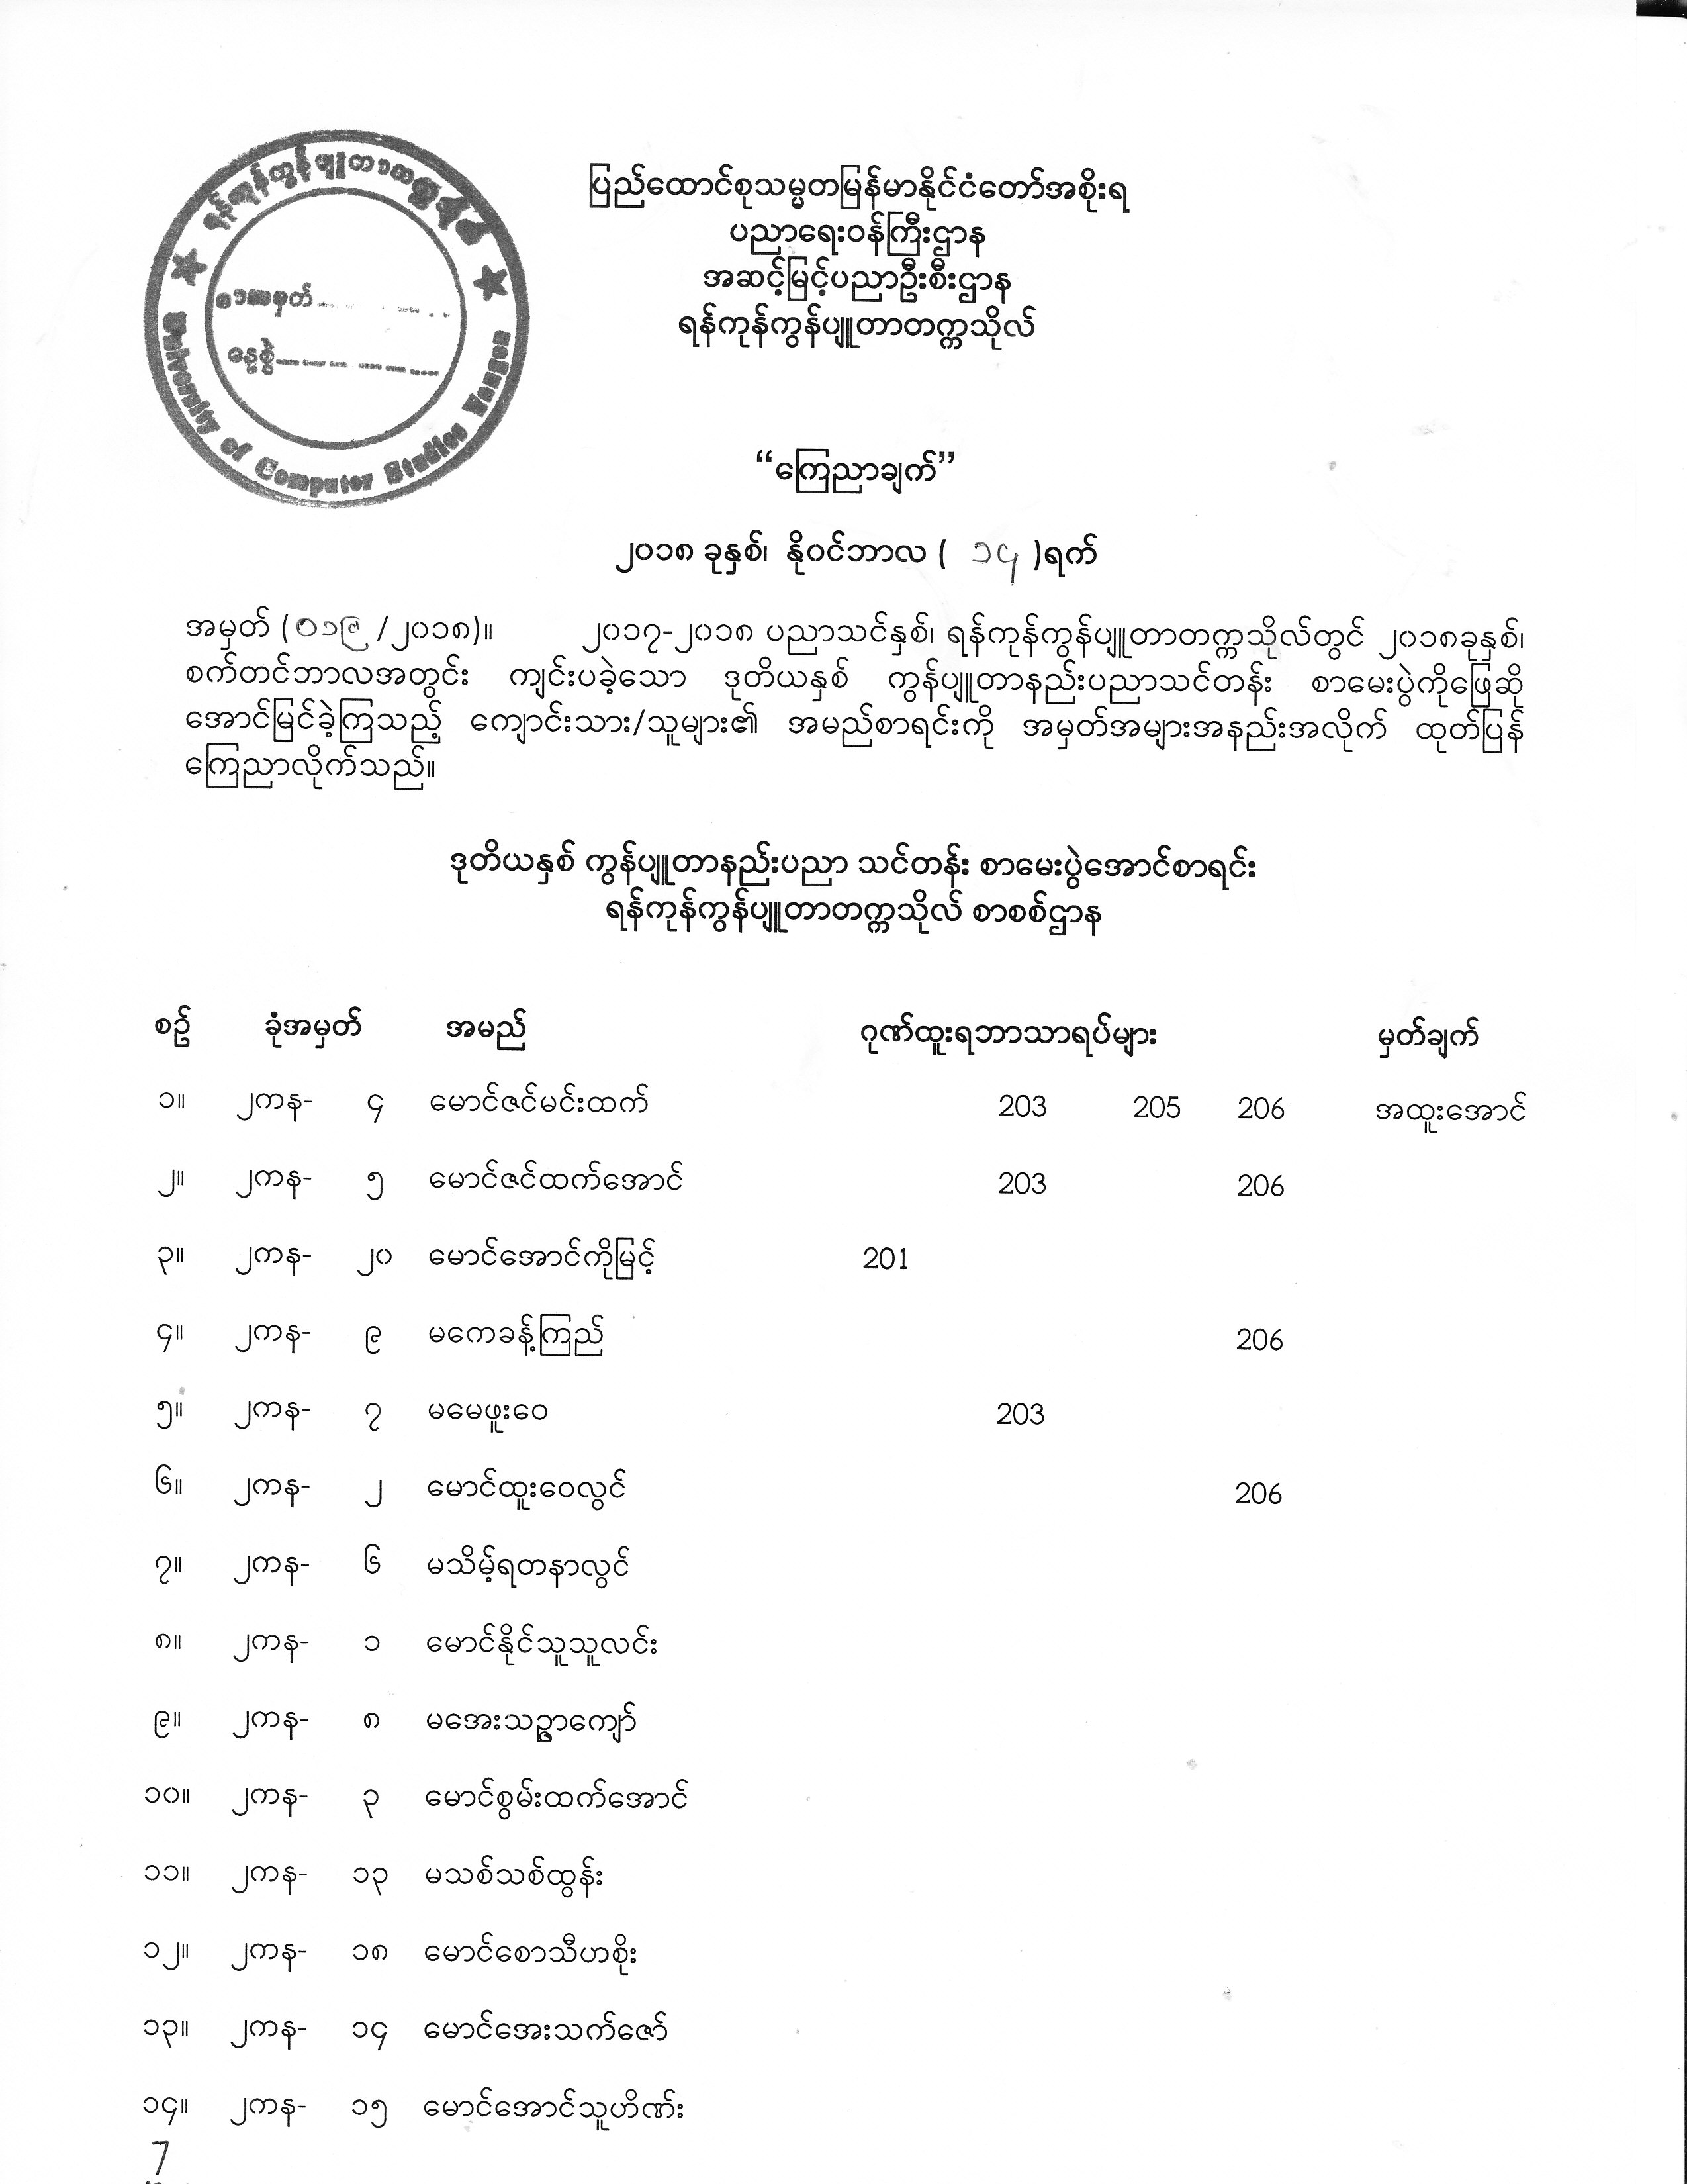 Second Year Exam Result